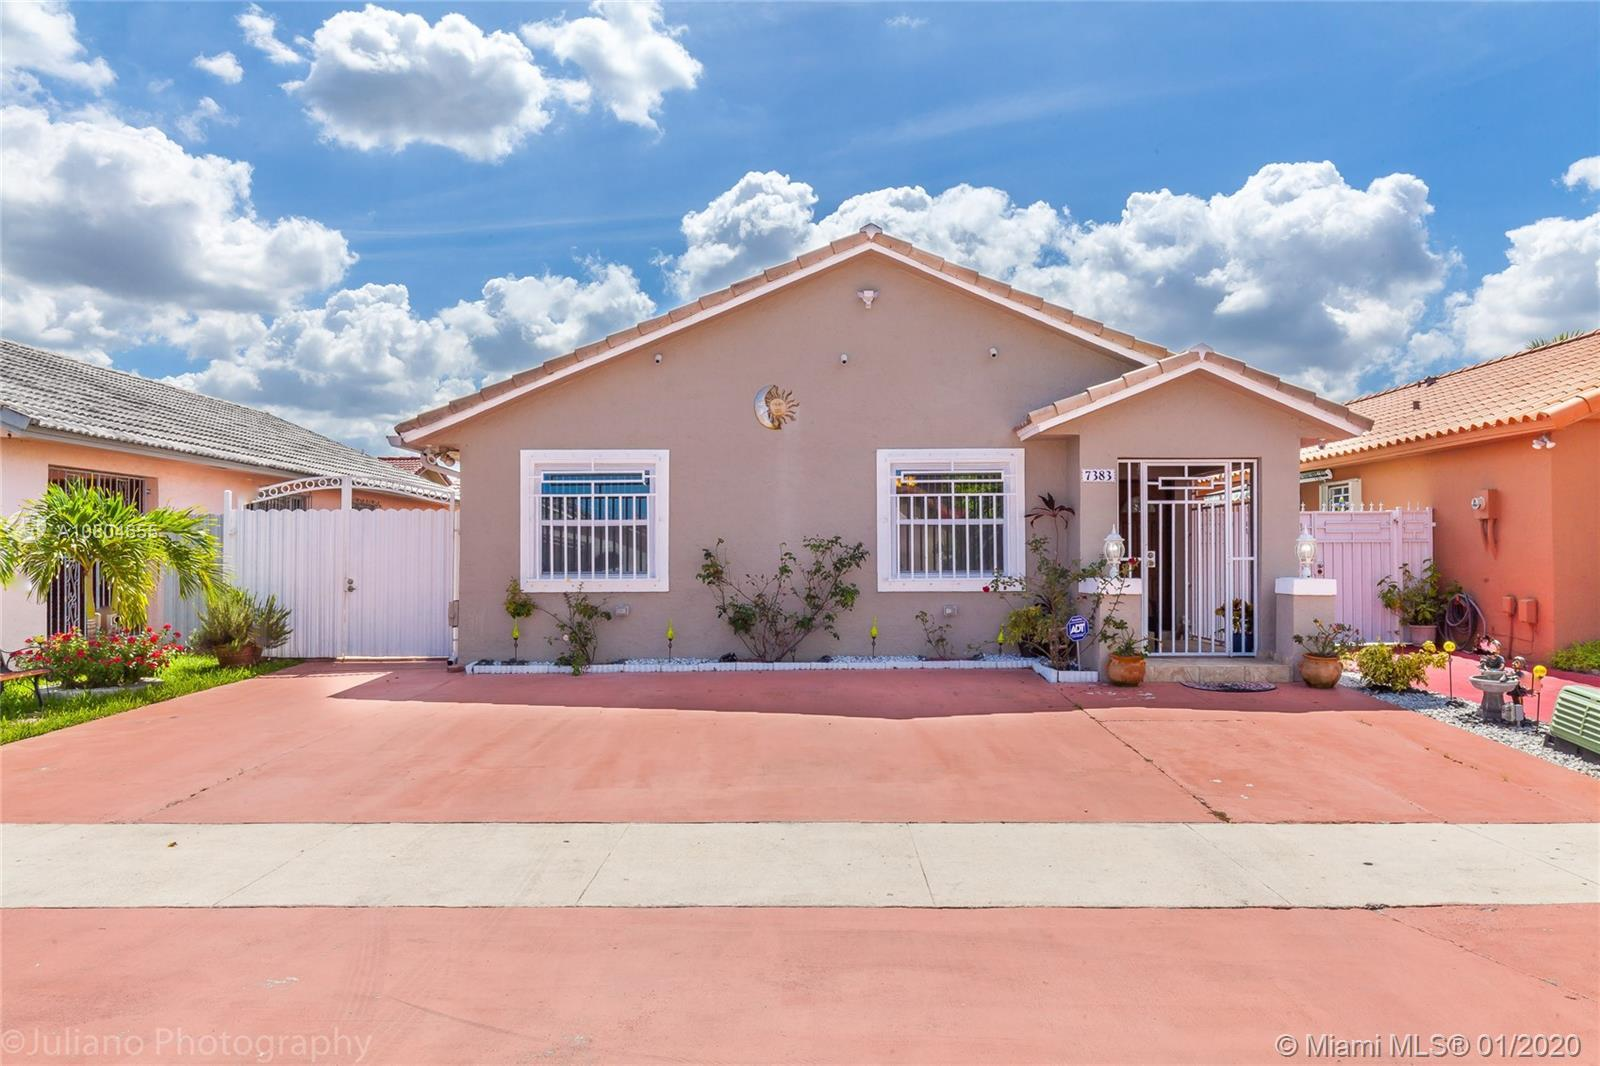 BEAUTIFUL 3 BEDROOM/2 BATHROOM HOME LOCATED IN HIALEAH. EASY TO SHOW, NEAR MAJOR SHOPPING CENTERS, P